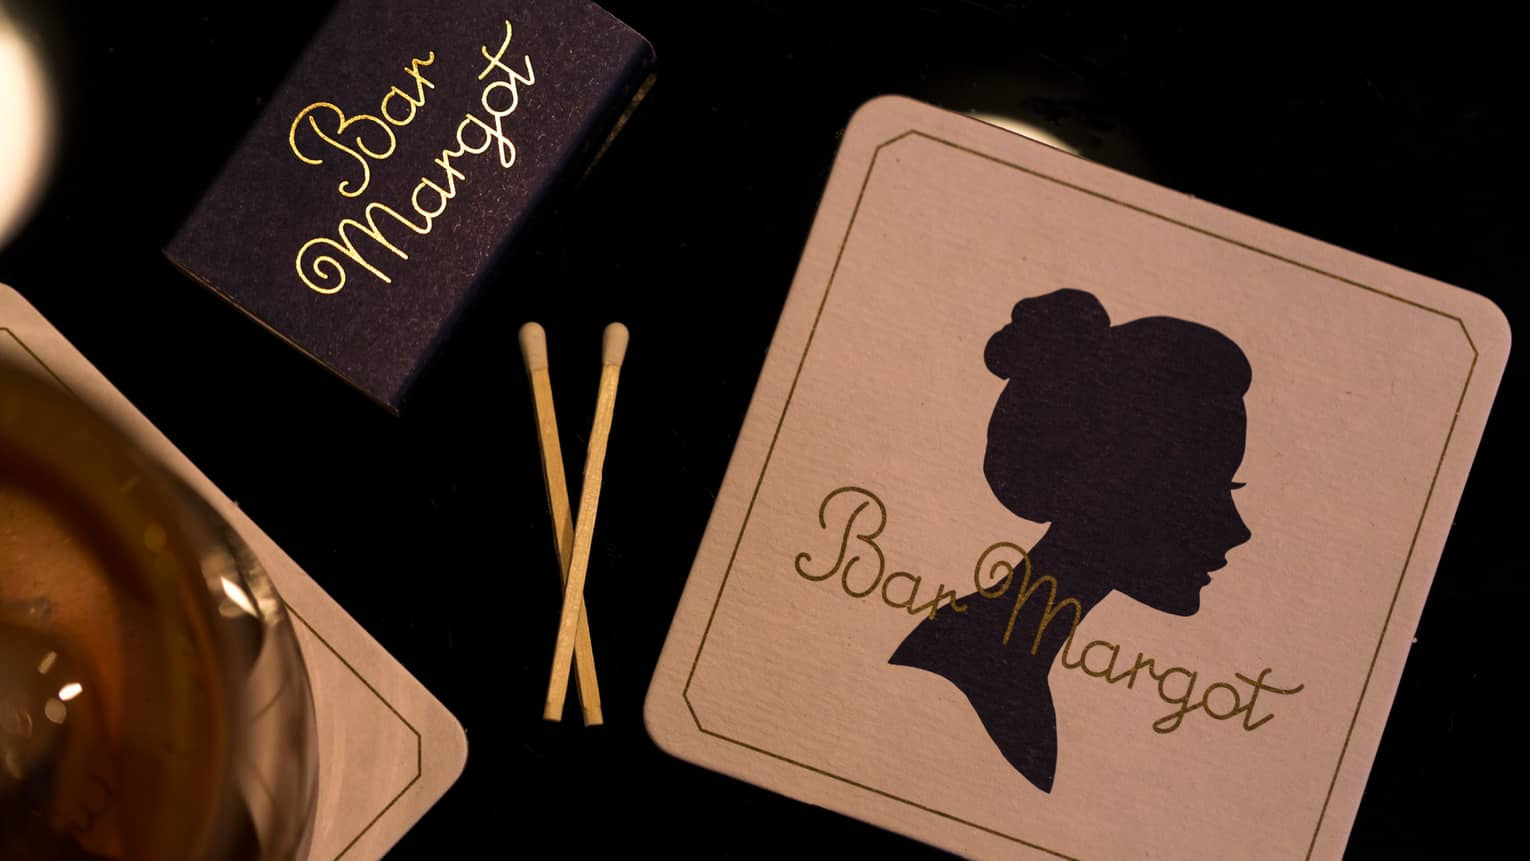 Bar Margot matchbox, two matches and coaster with vintage silhouette of woman's face